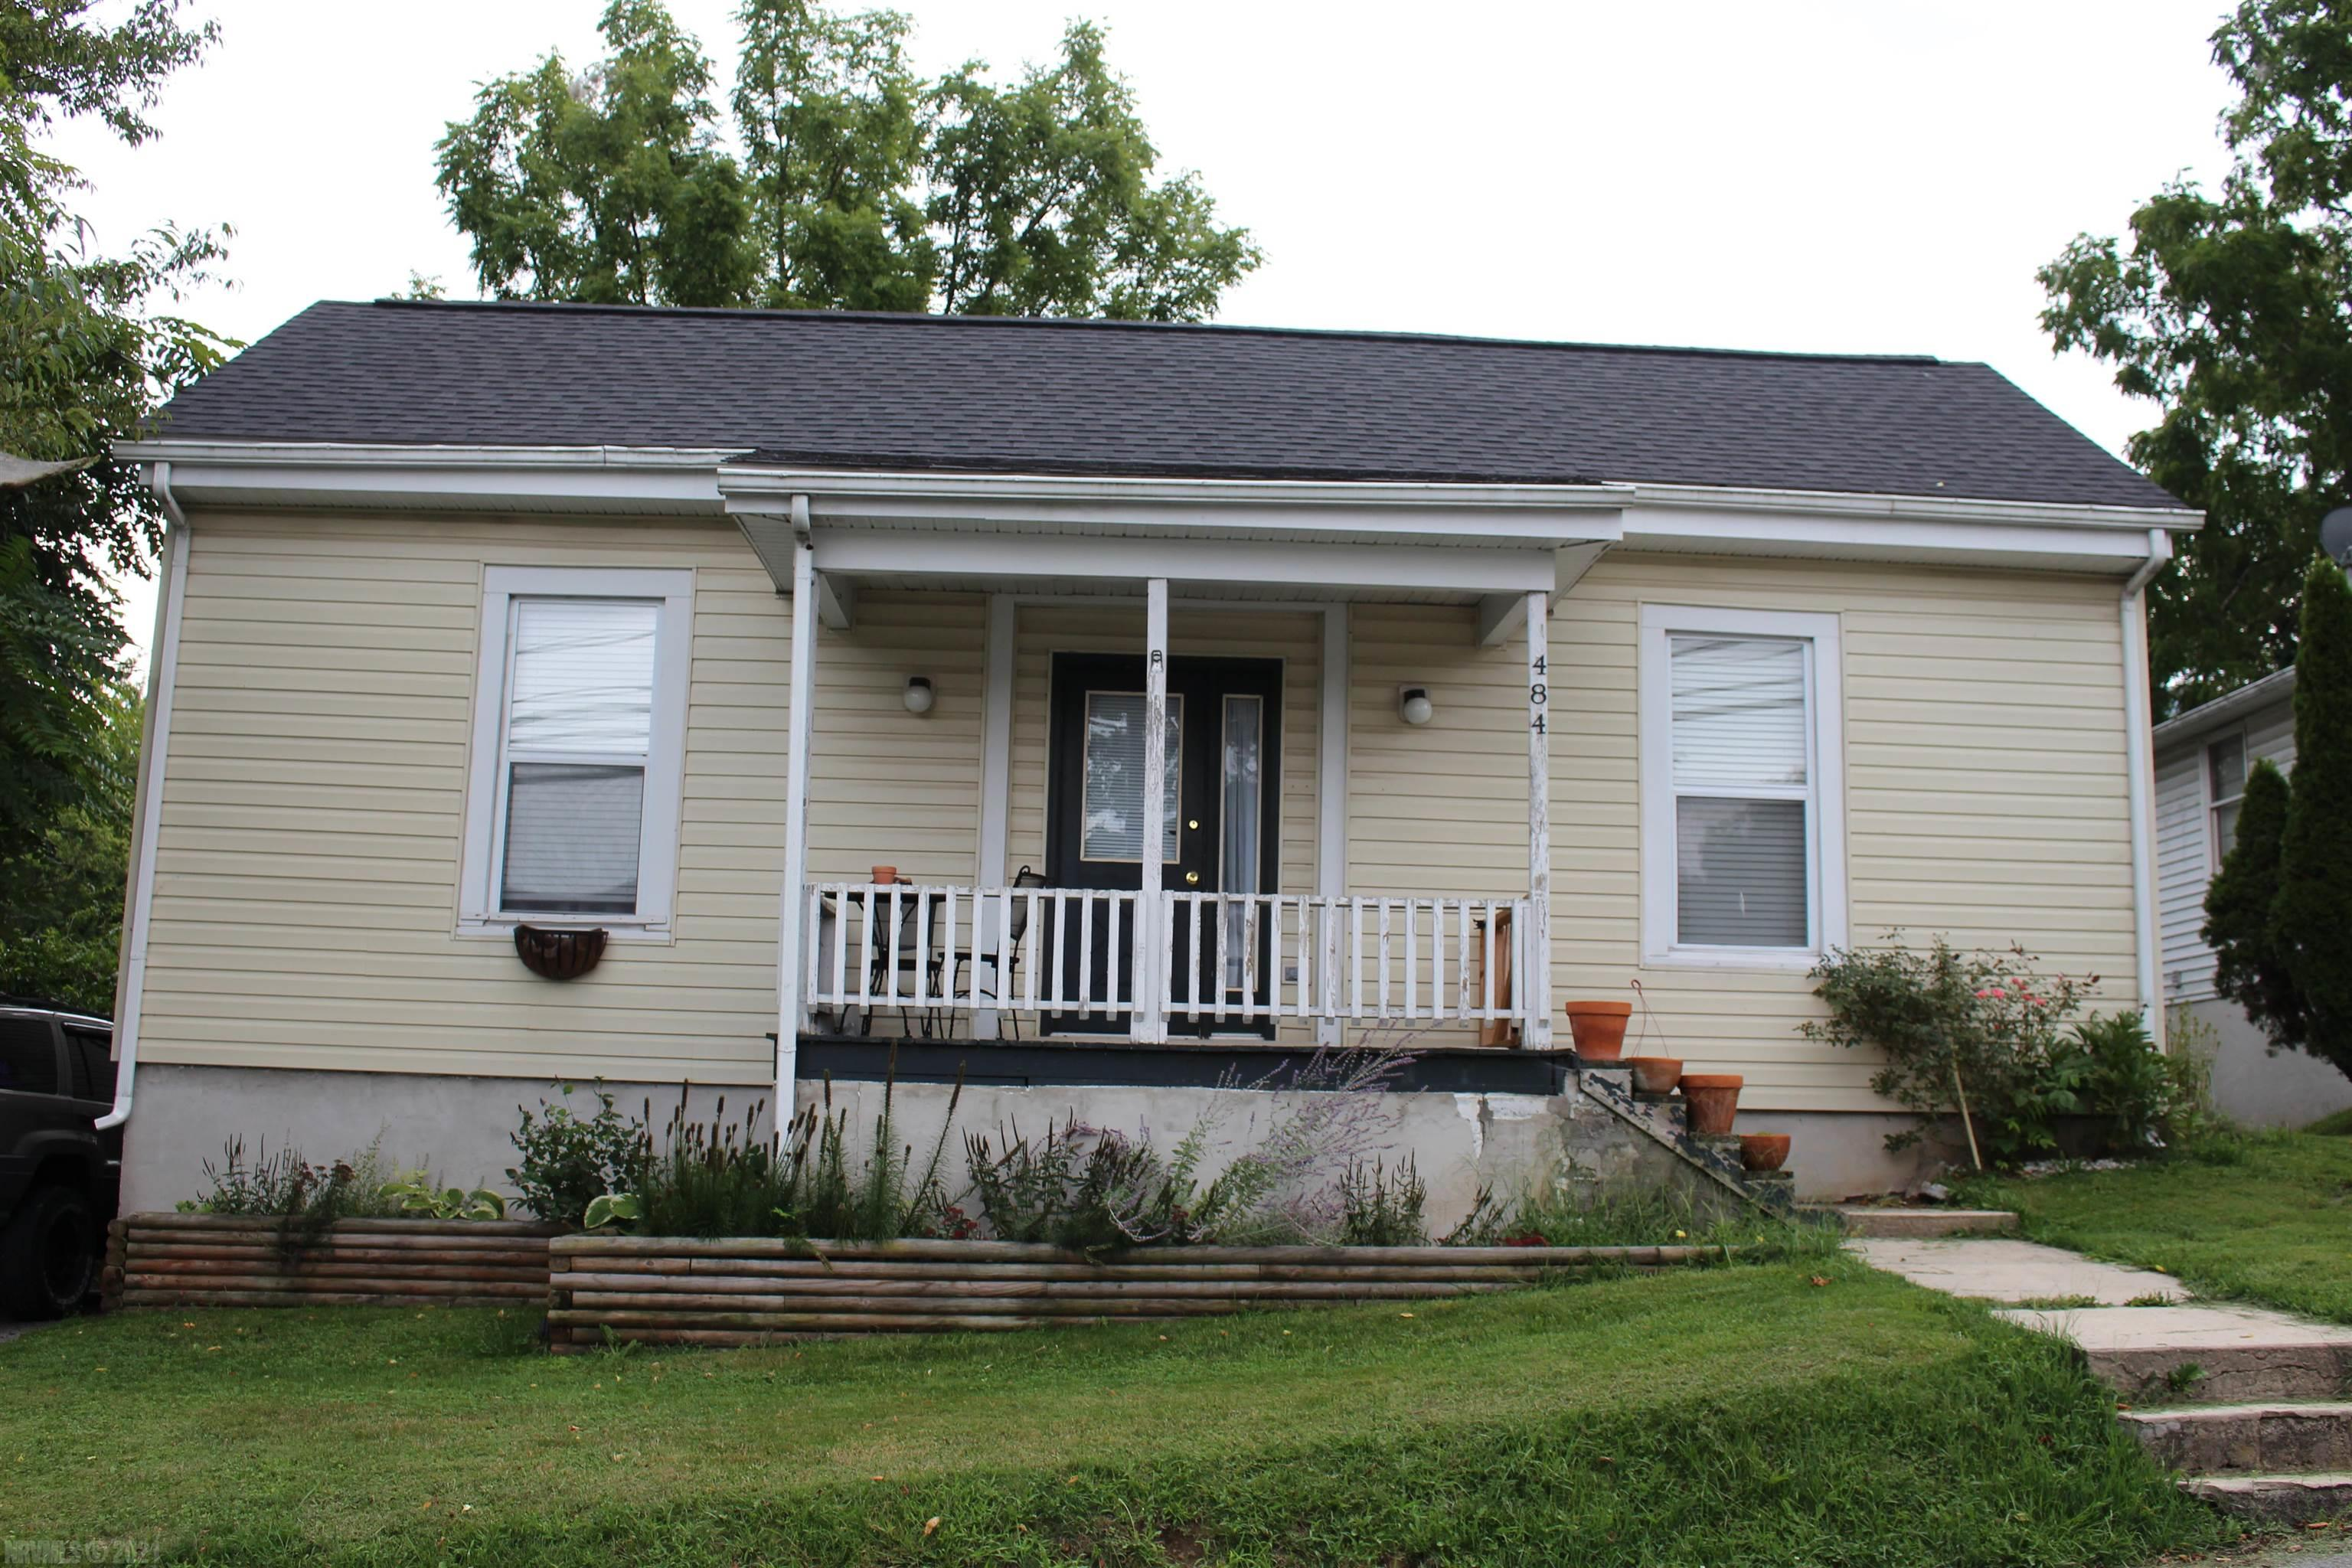 Perfect for investor or DIY Owner-Occupant, this 2-bedroom home is located in historic Tazewell very near Main Street, library, Court House, restaurants.